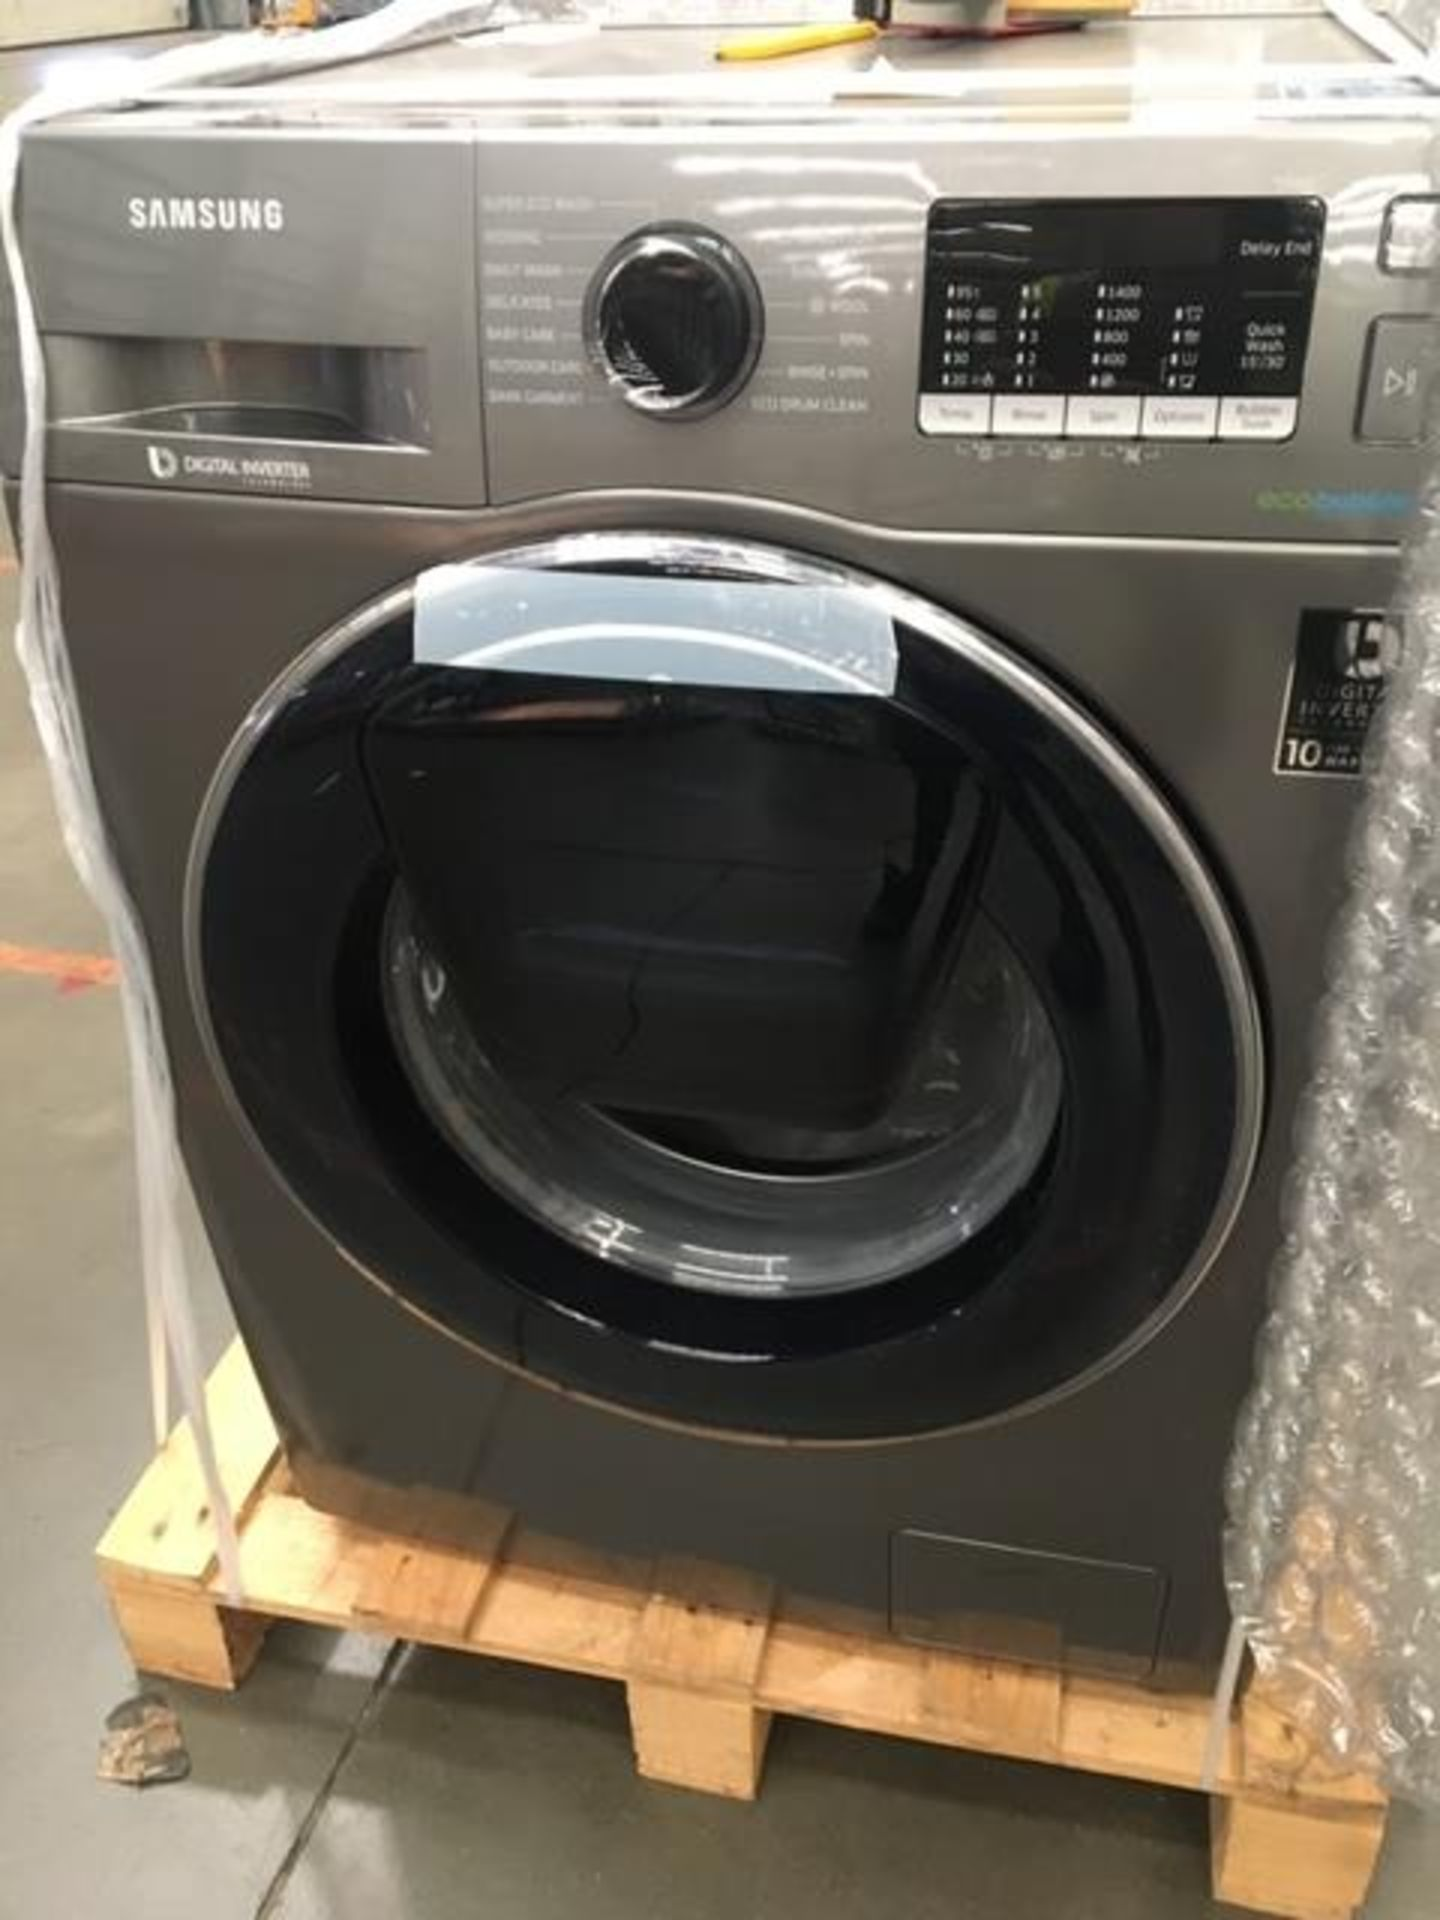 Pallet of 2 Samsung Premium Washing machines. Total Latest selling price £778* - Image 6 of 7